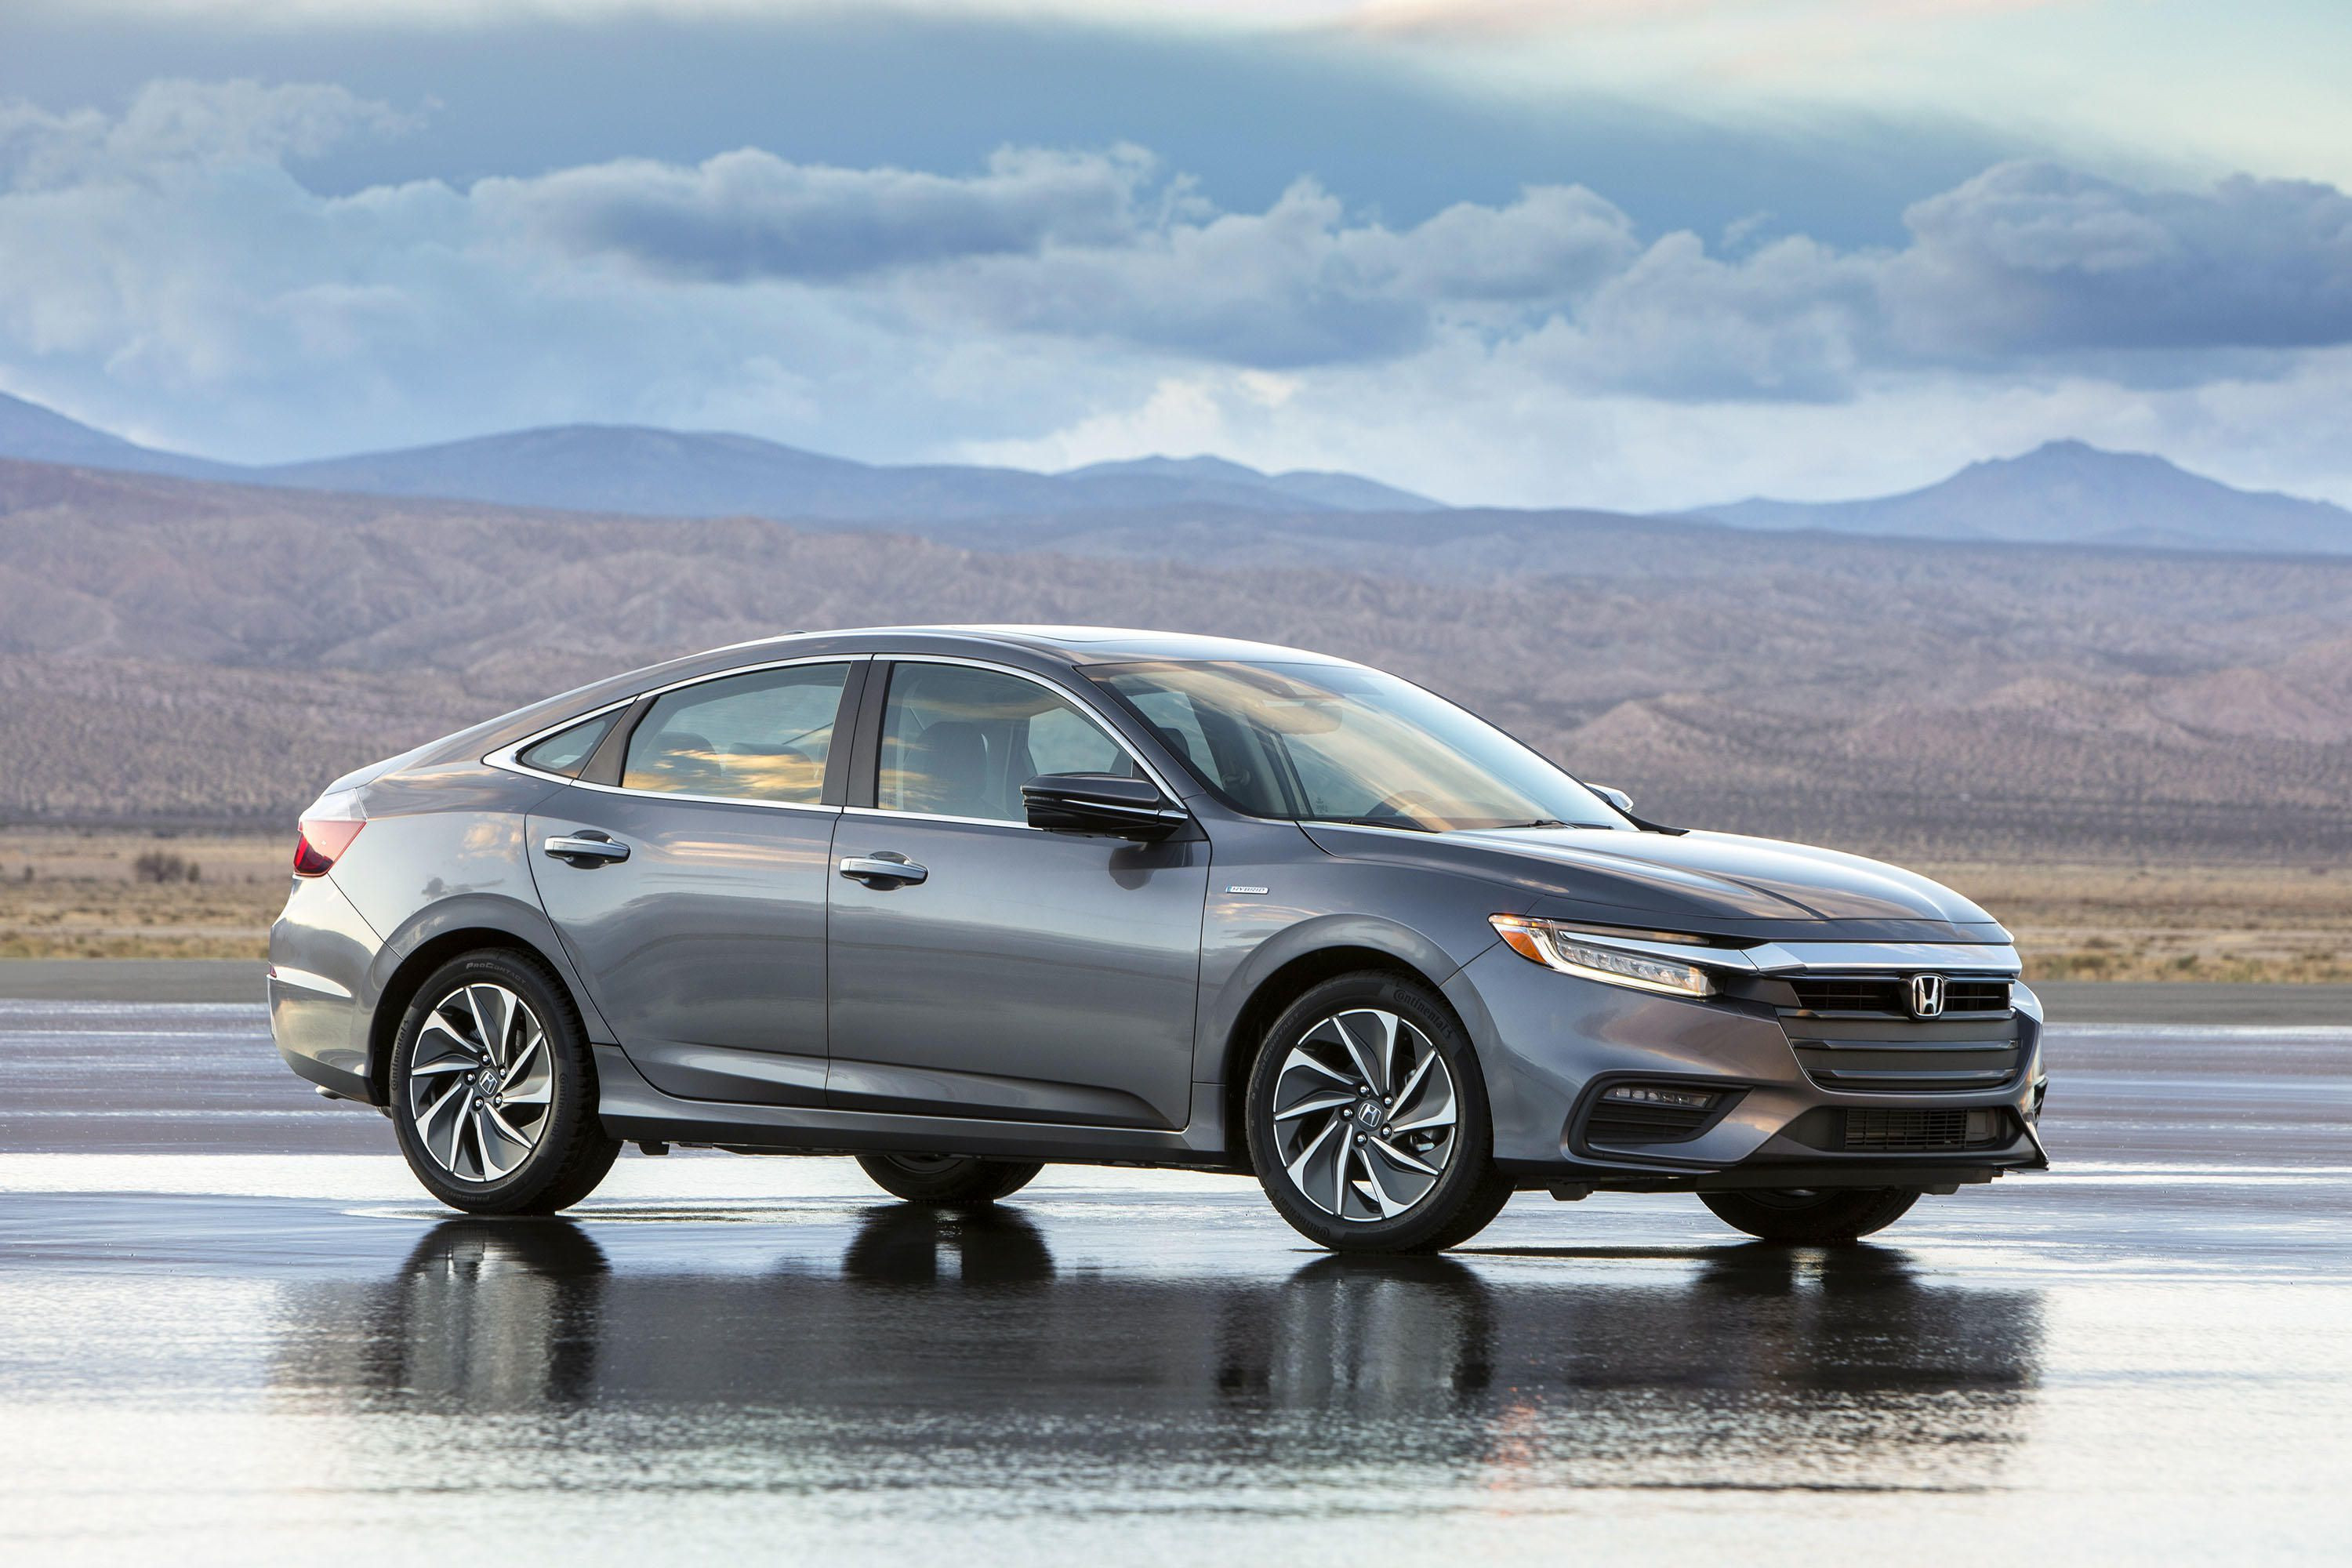 36 Best 2020 Honda Insight Price Design and Review